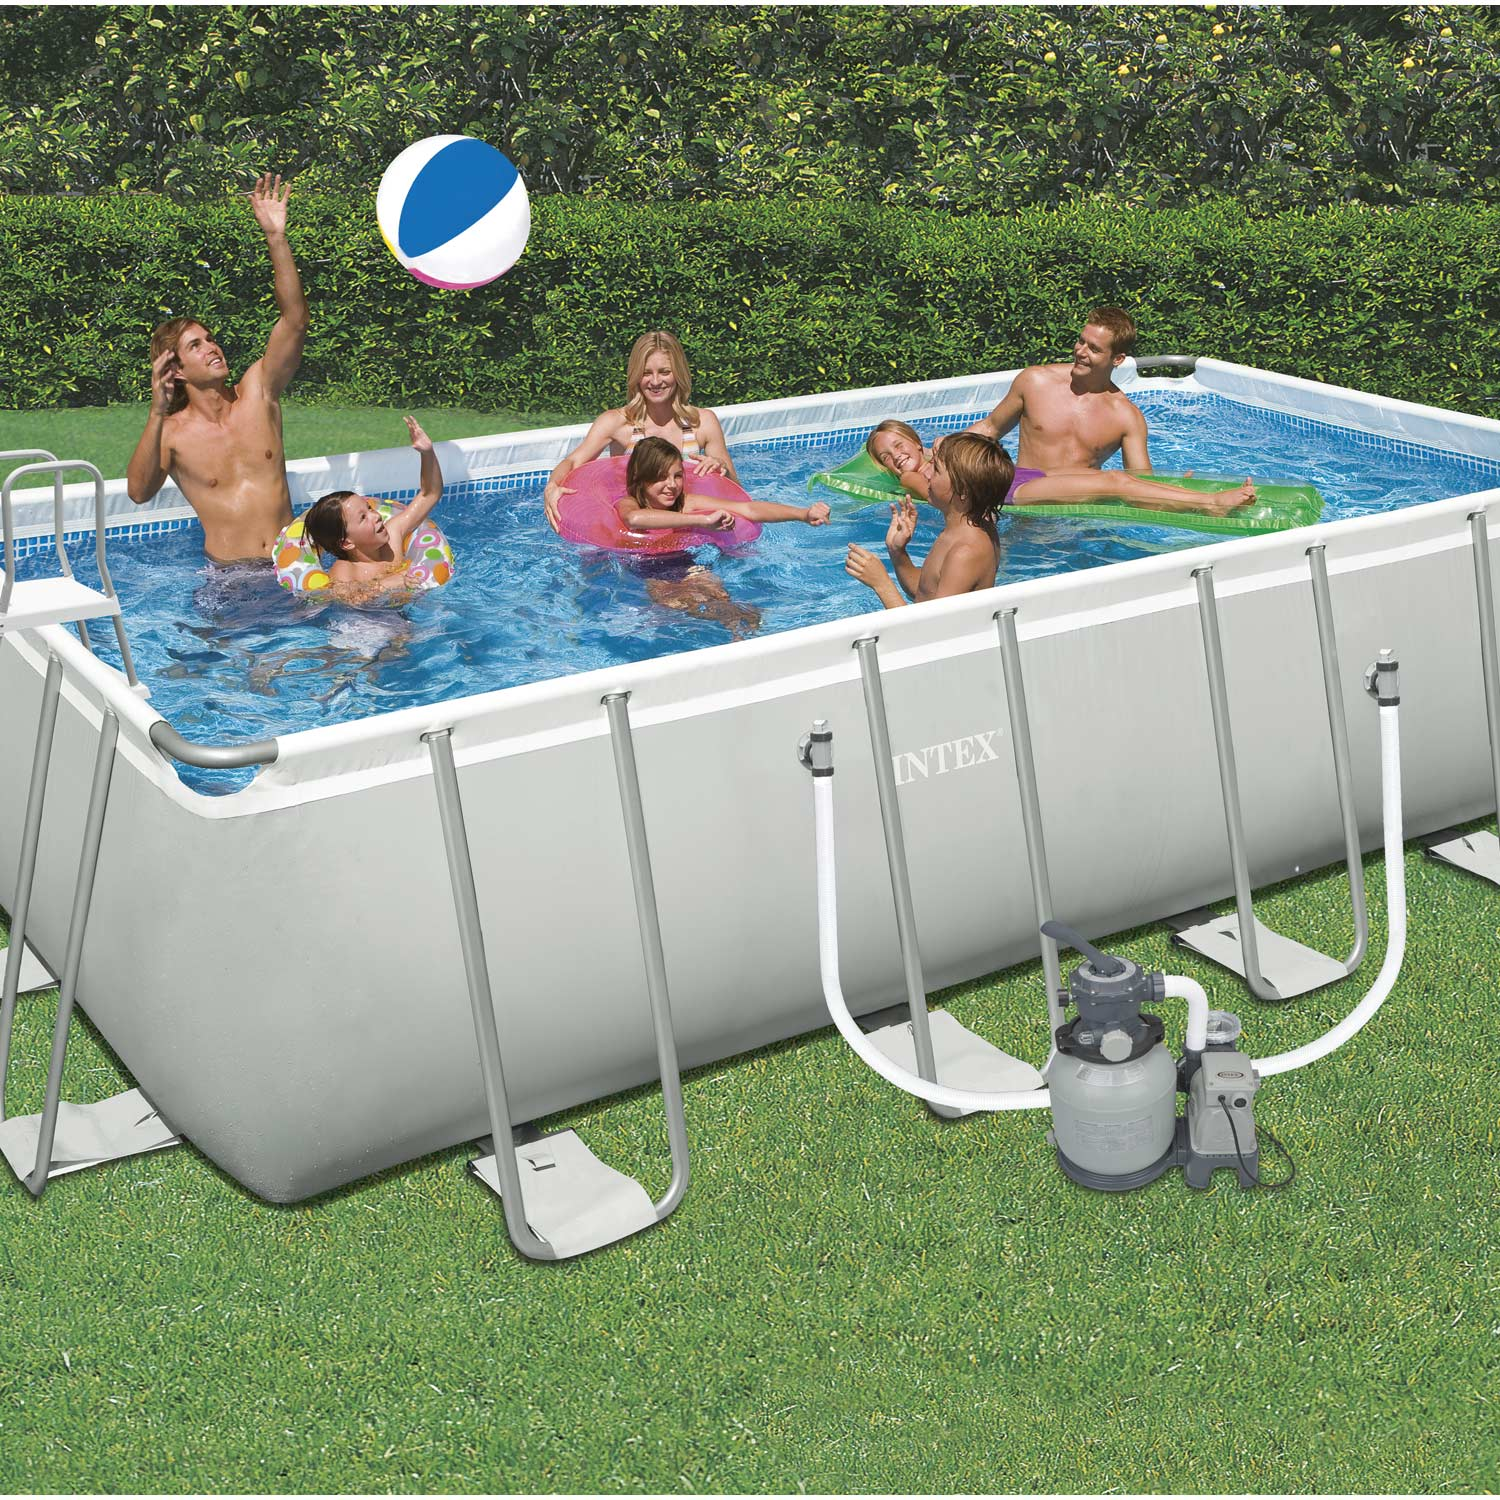 Piscine hors sol autoportante tubulaire intex l x l for Pediluve piscine hors sol